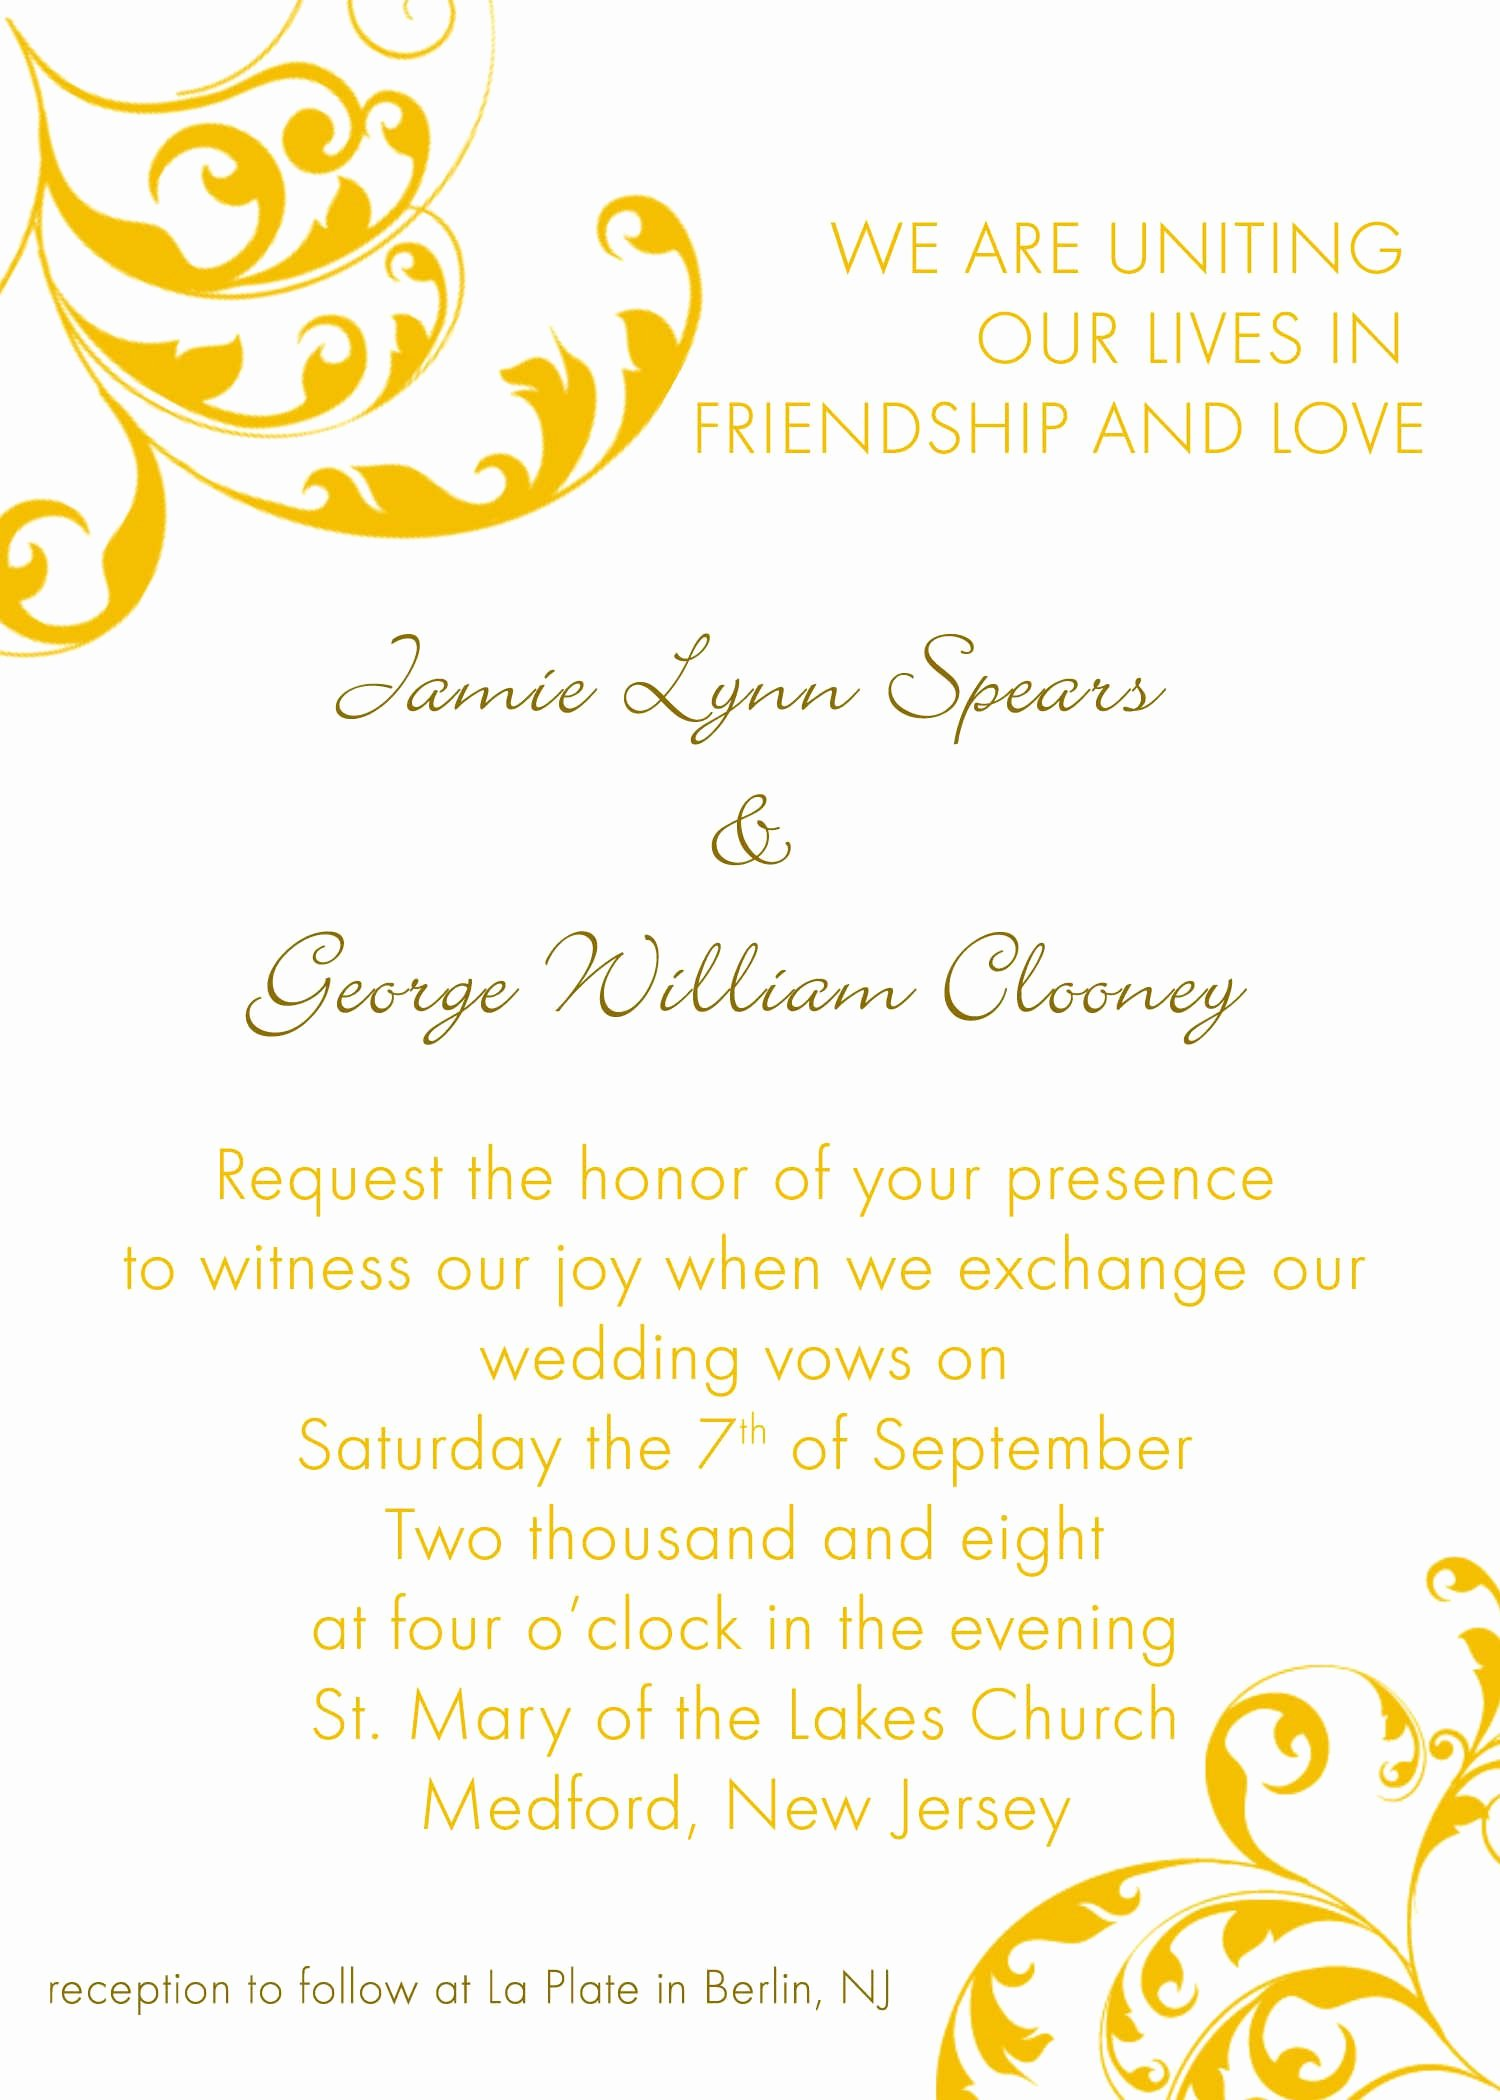 Word Template for Invitations Elegant Invitation Word Templates Free Wedding Invitation